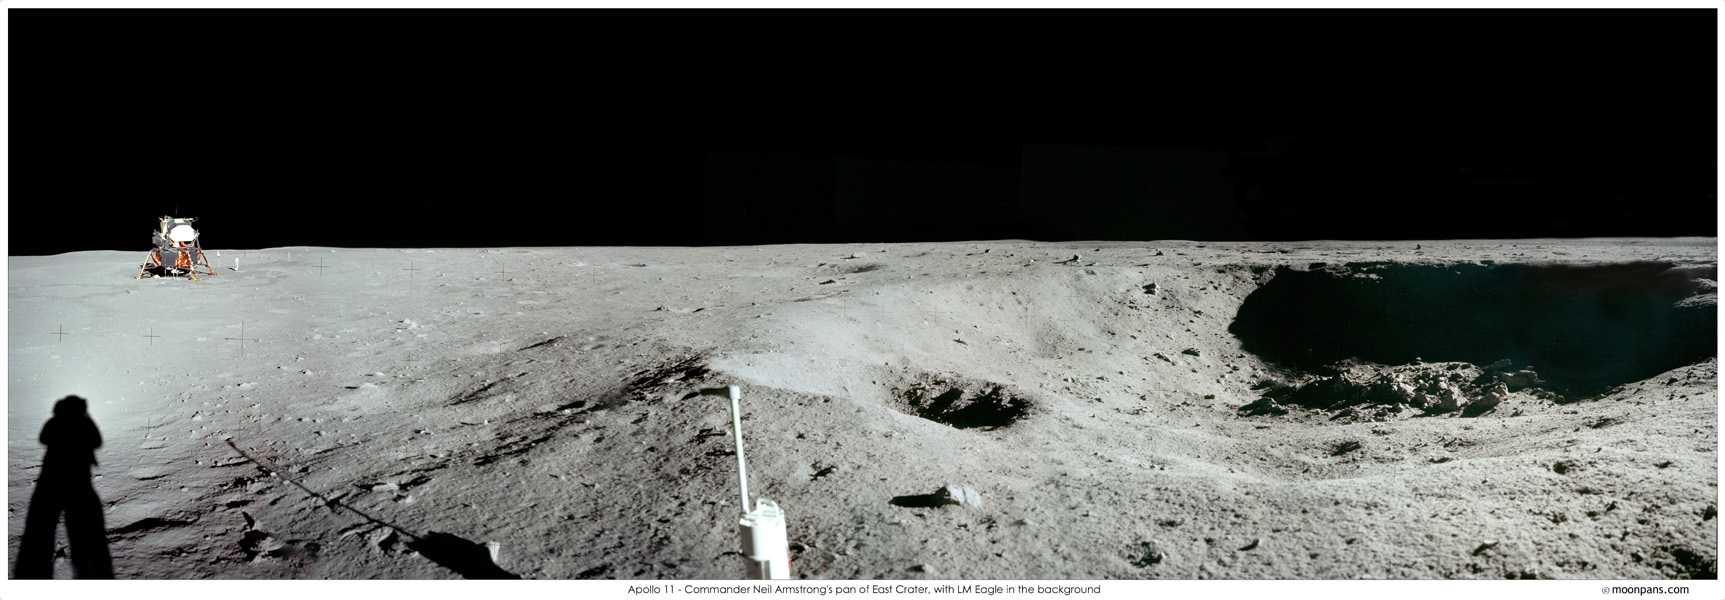 APOD: 2007 July 20 - Apollo 11: East Crater Panorama